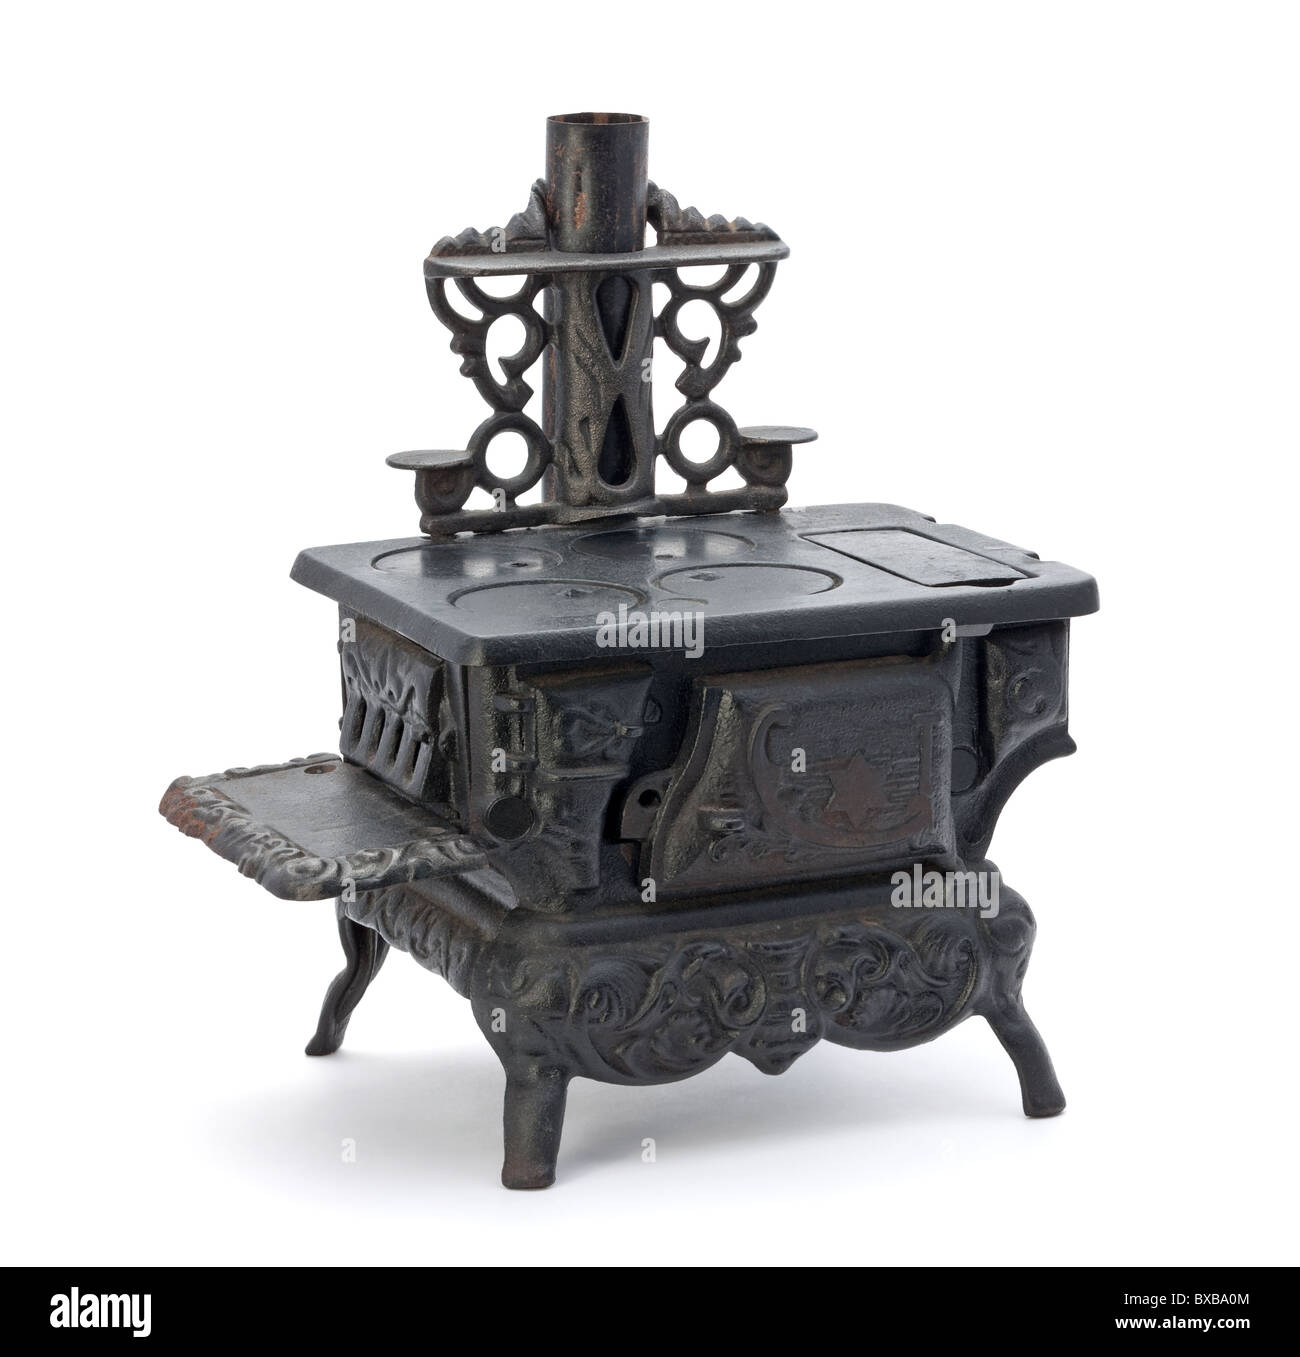 Old Miniature Stove isolated on a white background - Stock Image